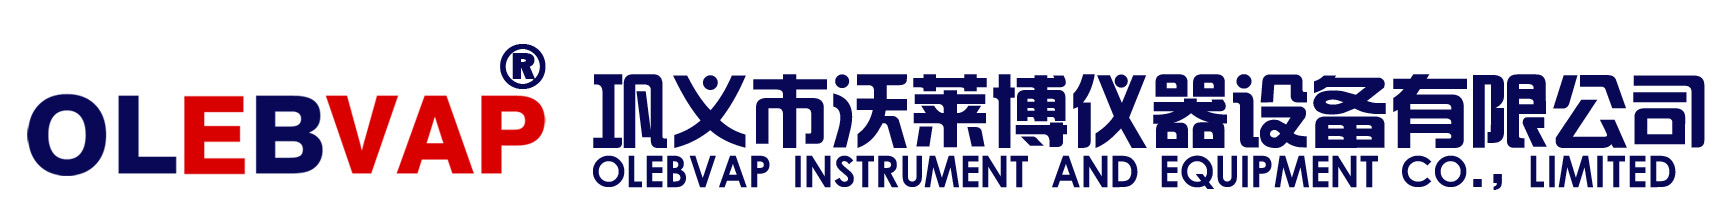 GONGYI OLEBVAP INSTRUMENT AND EQUIPMENT CO., LIMITED